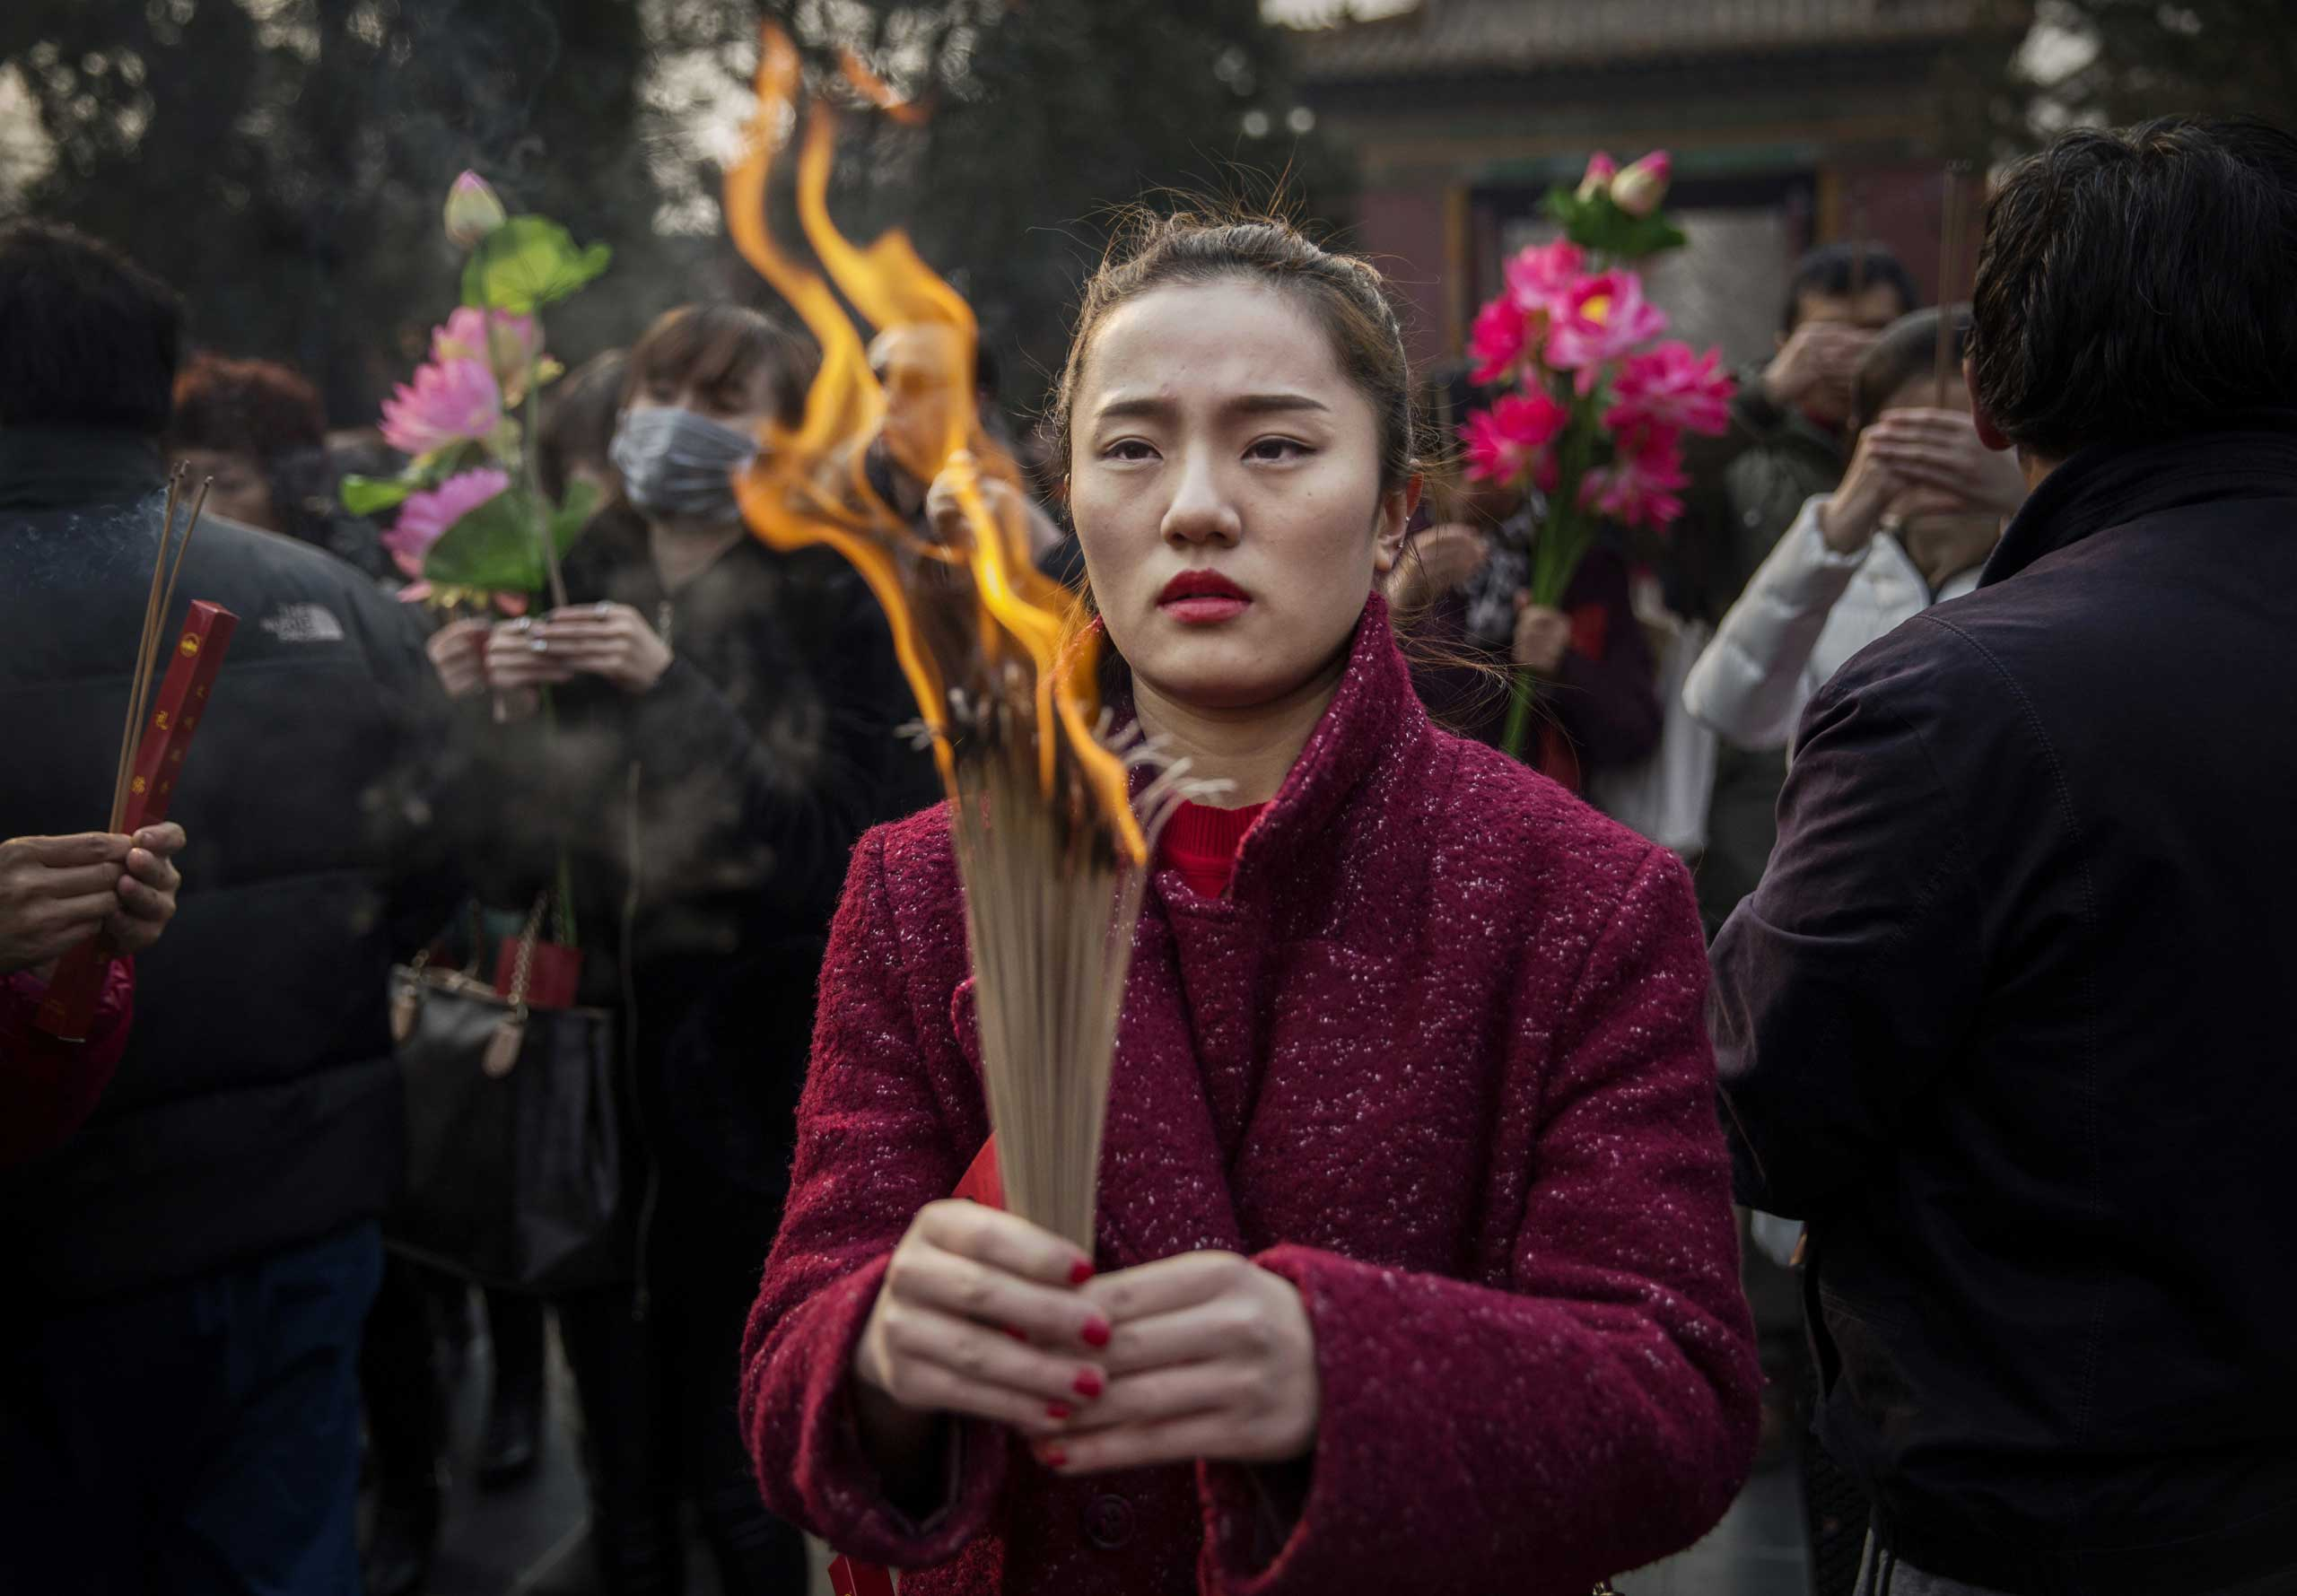 Woman holds incense while praying with others at the Yonghegong Lama Temple during celebrations for the Lunar New Year, Feb. 19, 2015 in Beijing.